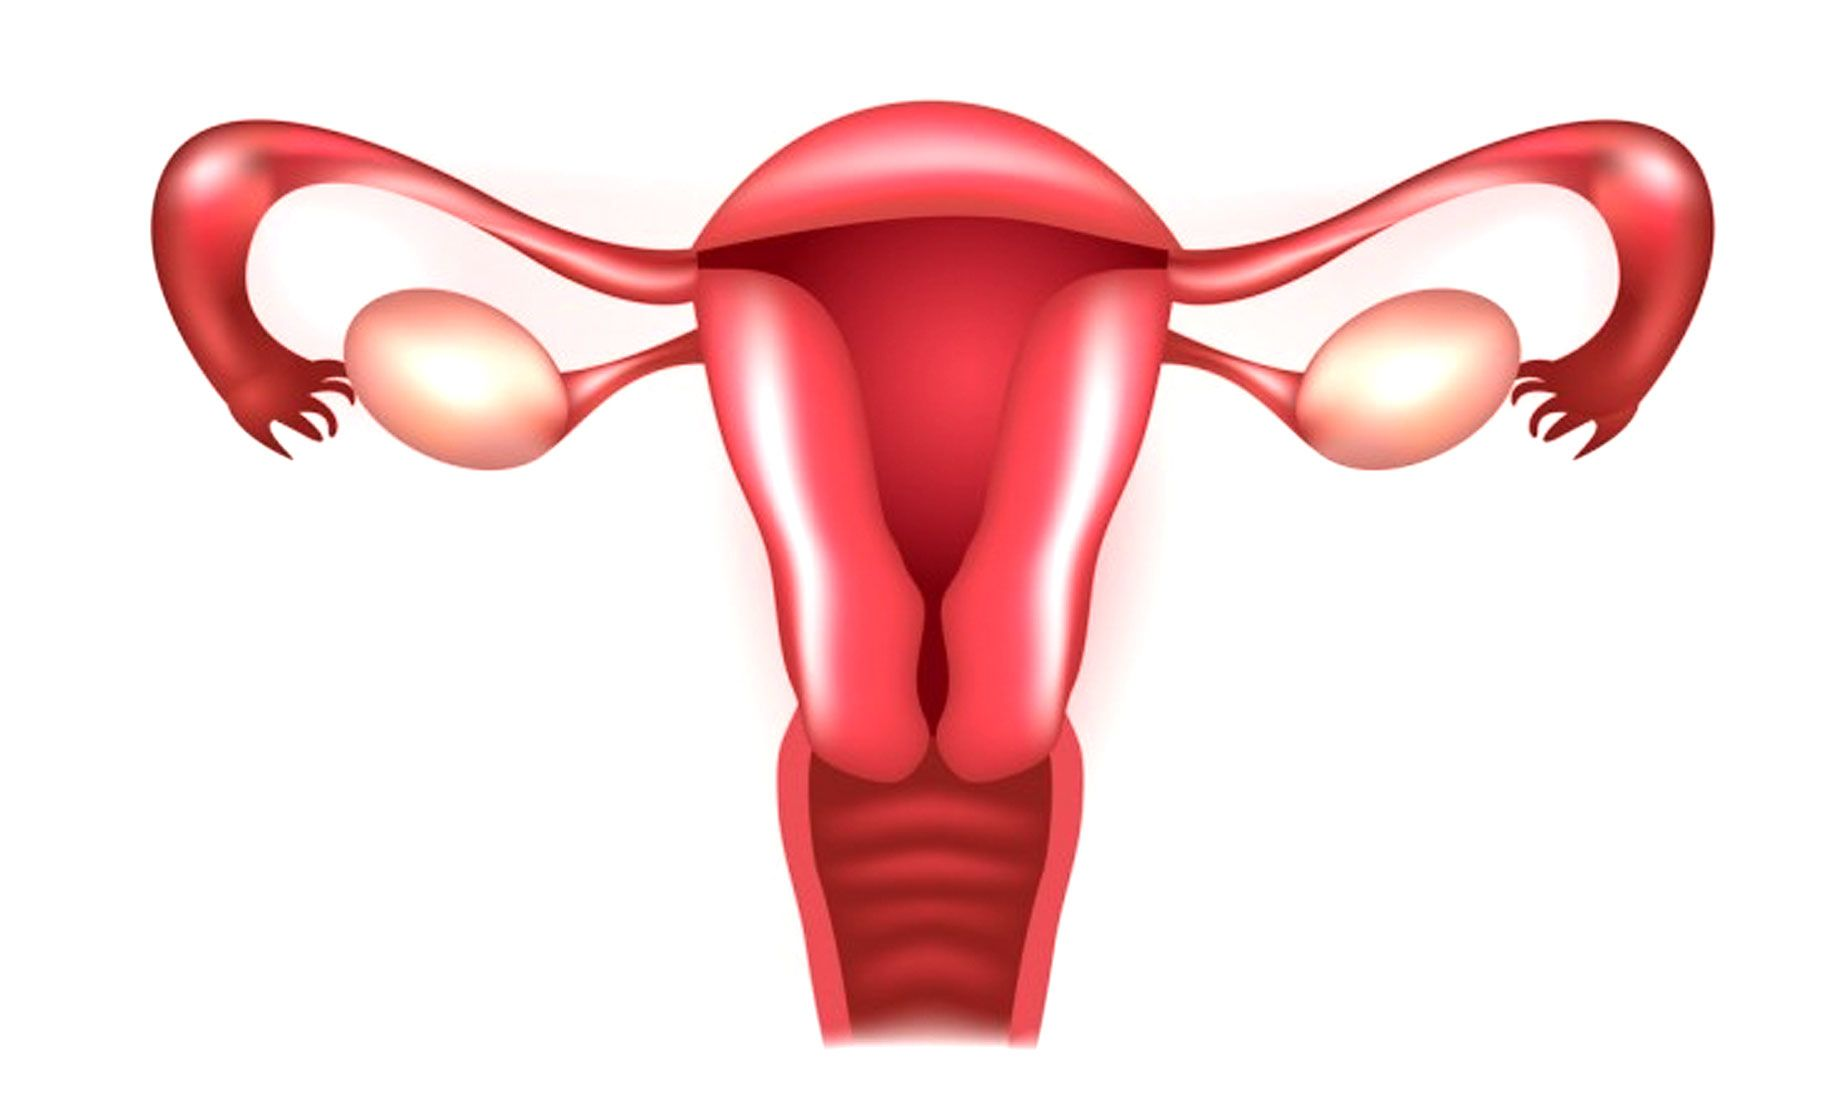 Rendering of female uterus, fallopian tubes and ovaries to help understand infertility